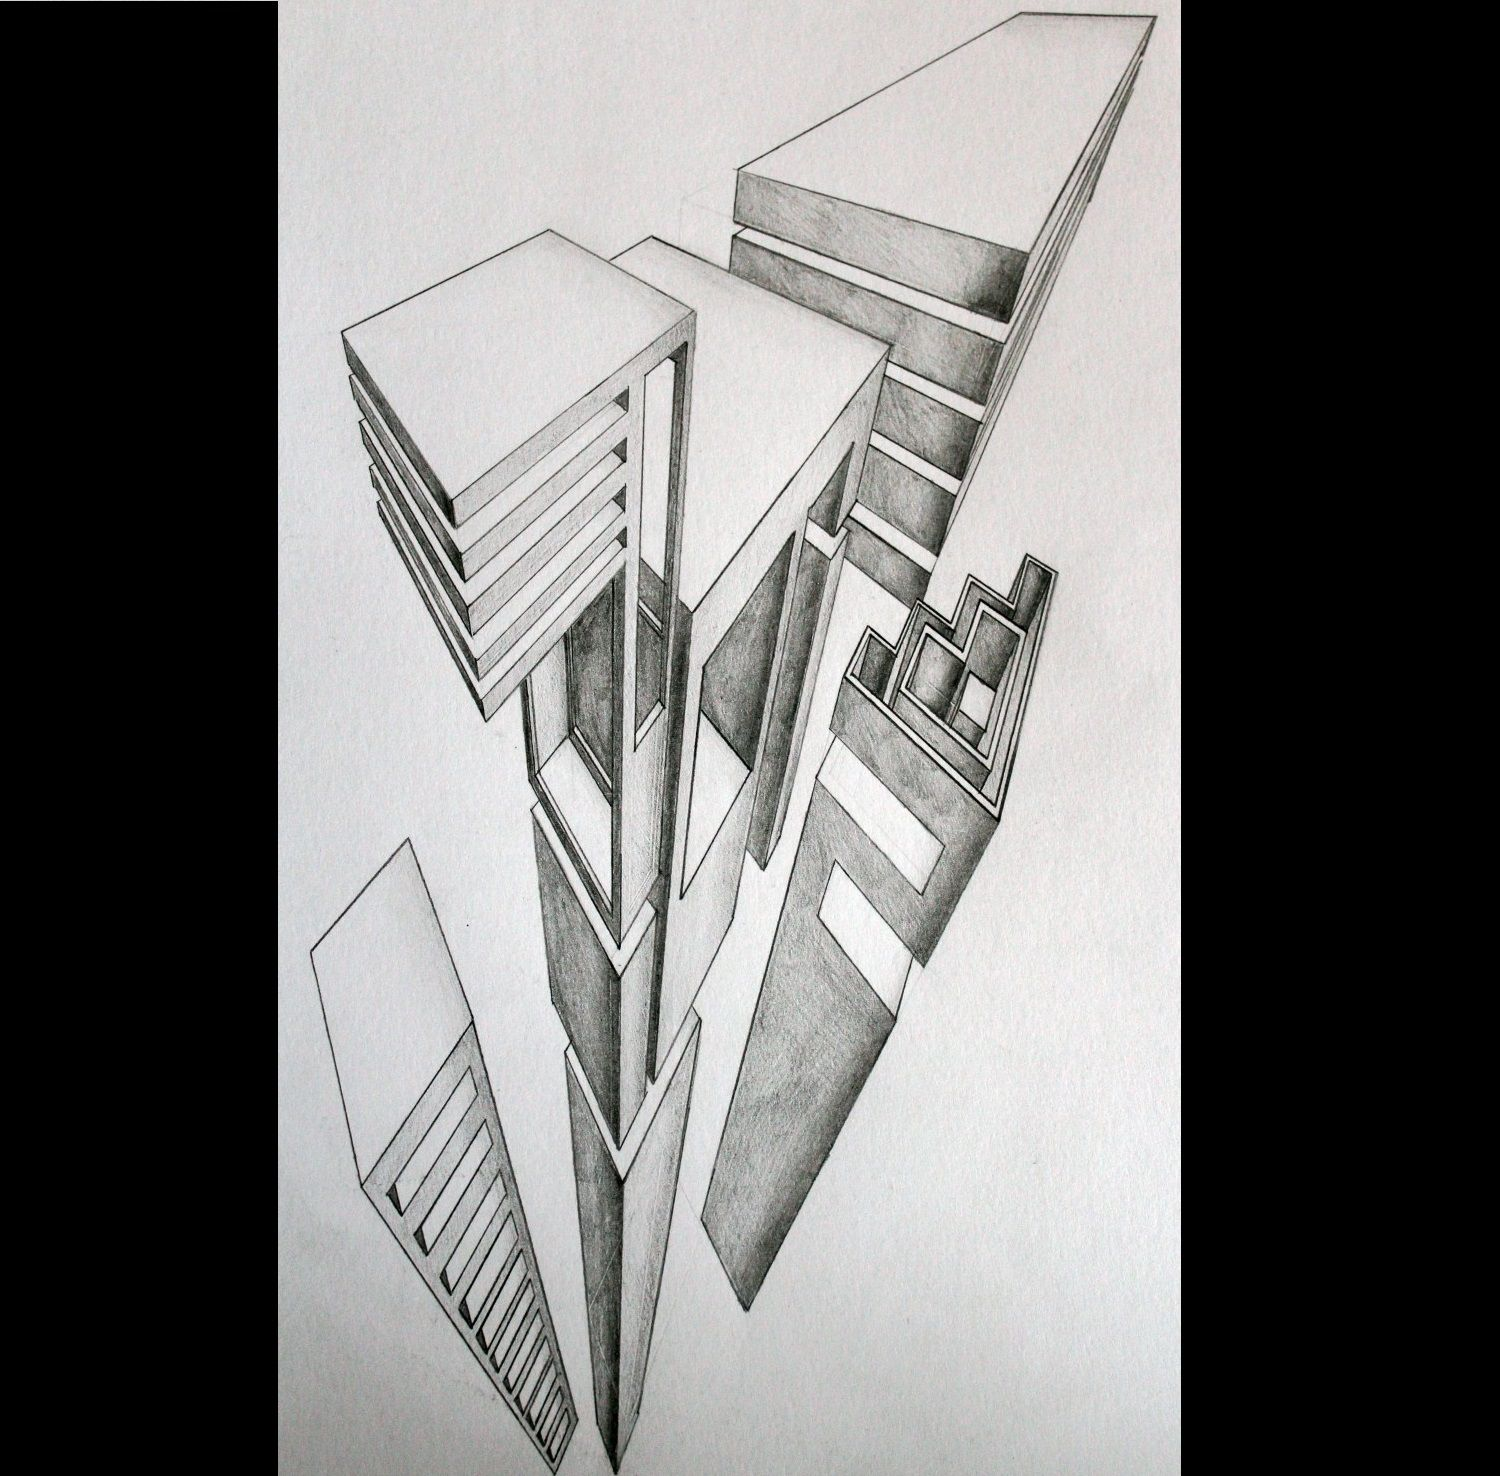 Architecture with vanishing points  #drawing #art #realistic #architecture #vanishingpoint